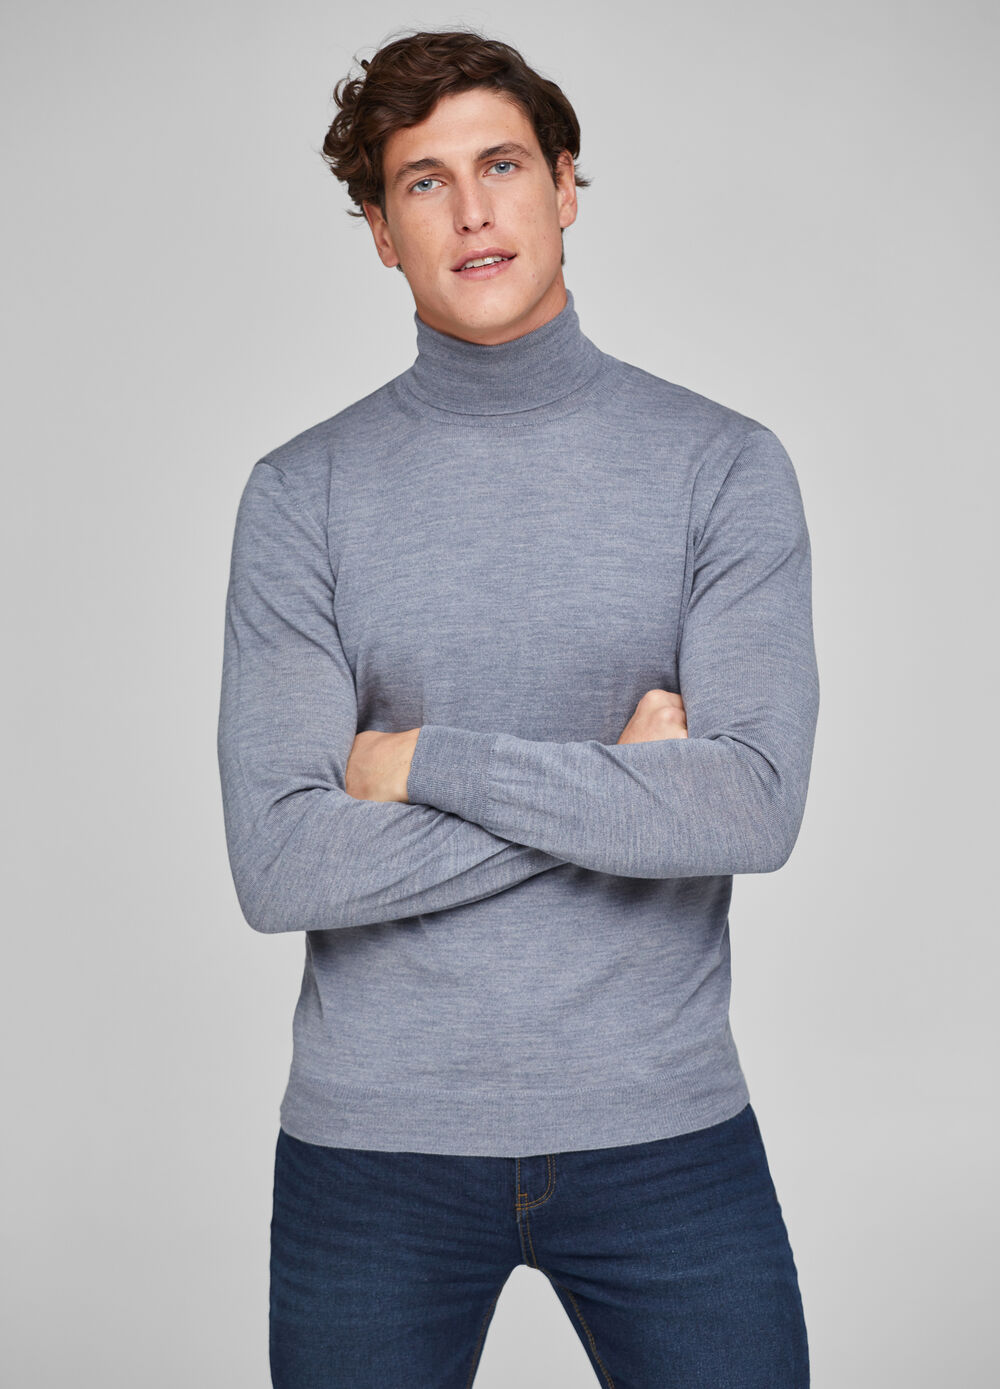 100% merino wool pullover with high neck